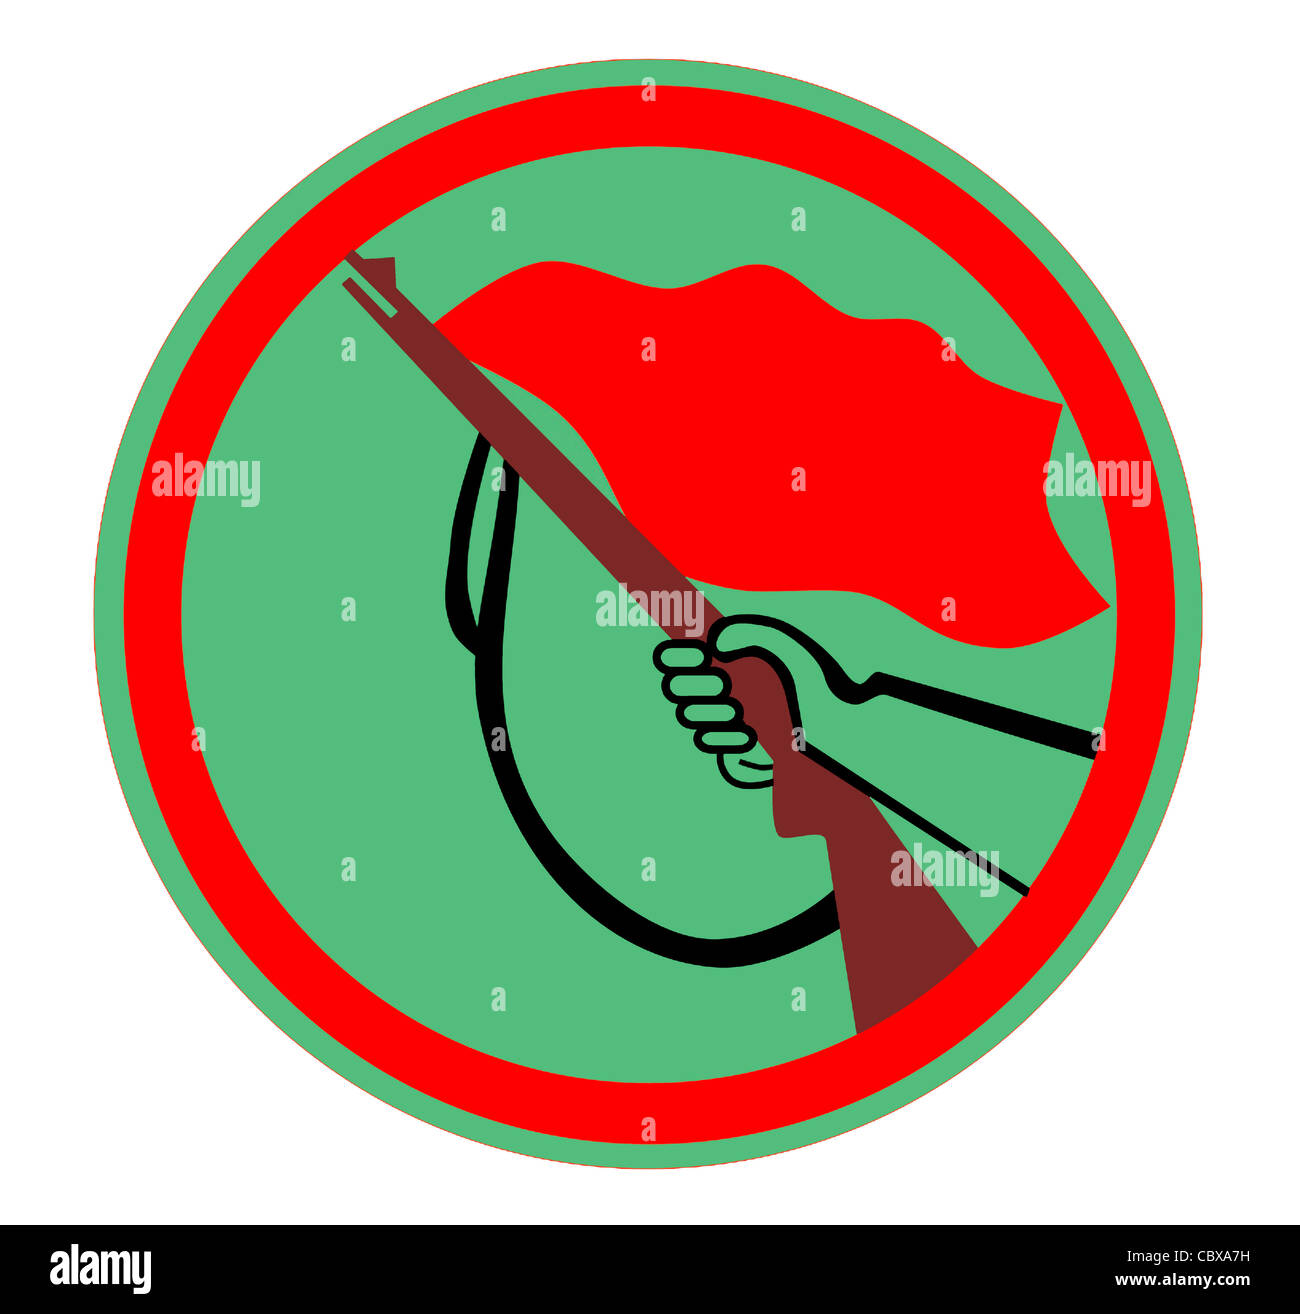 """Logo of paramilitary workers organization """"Combat Groups of the Working Class"""" the GDR. - Stock Image"""